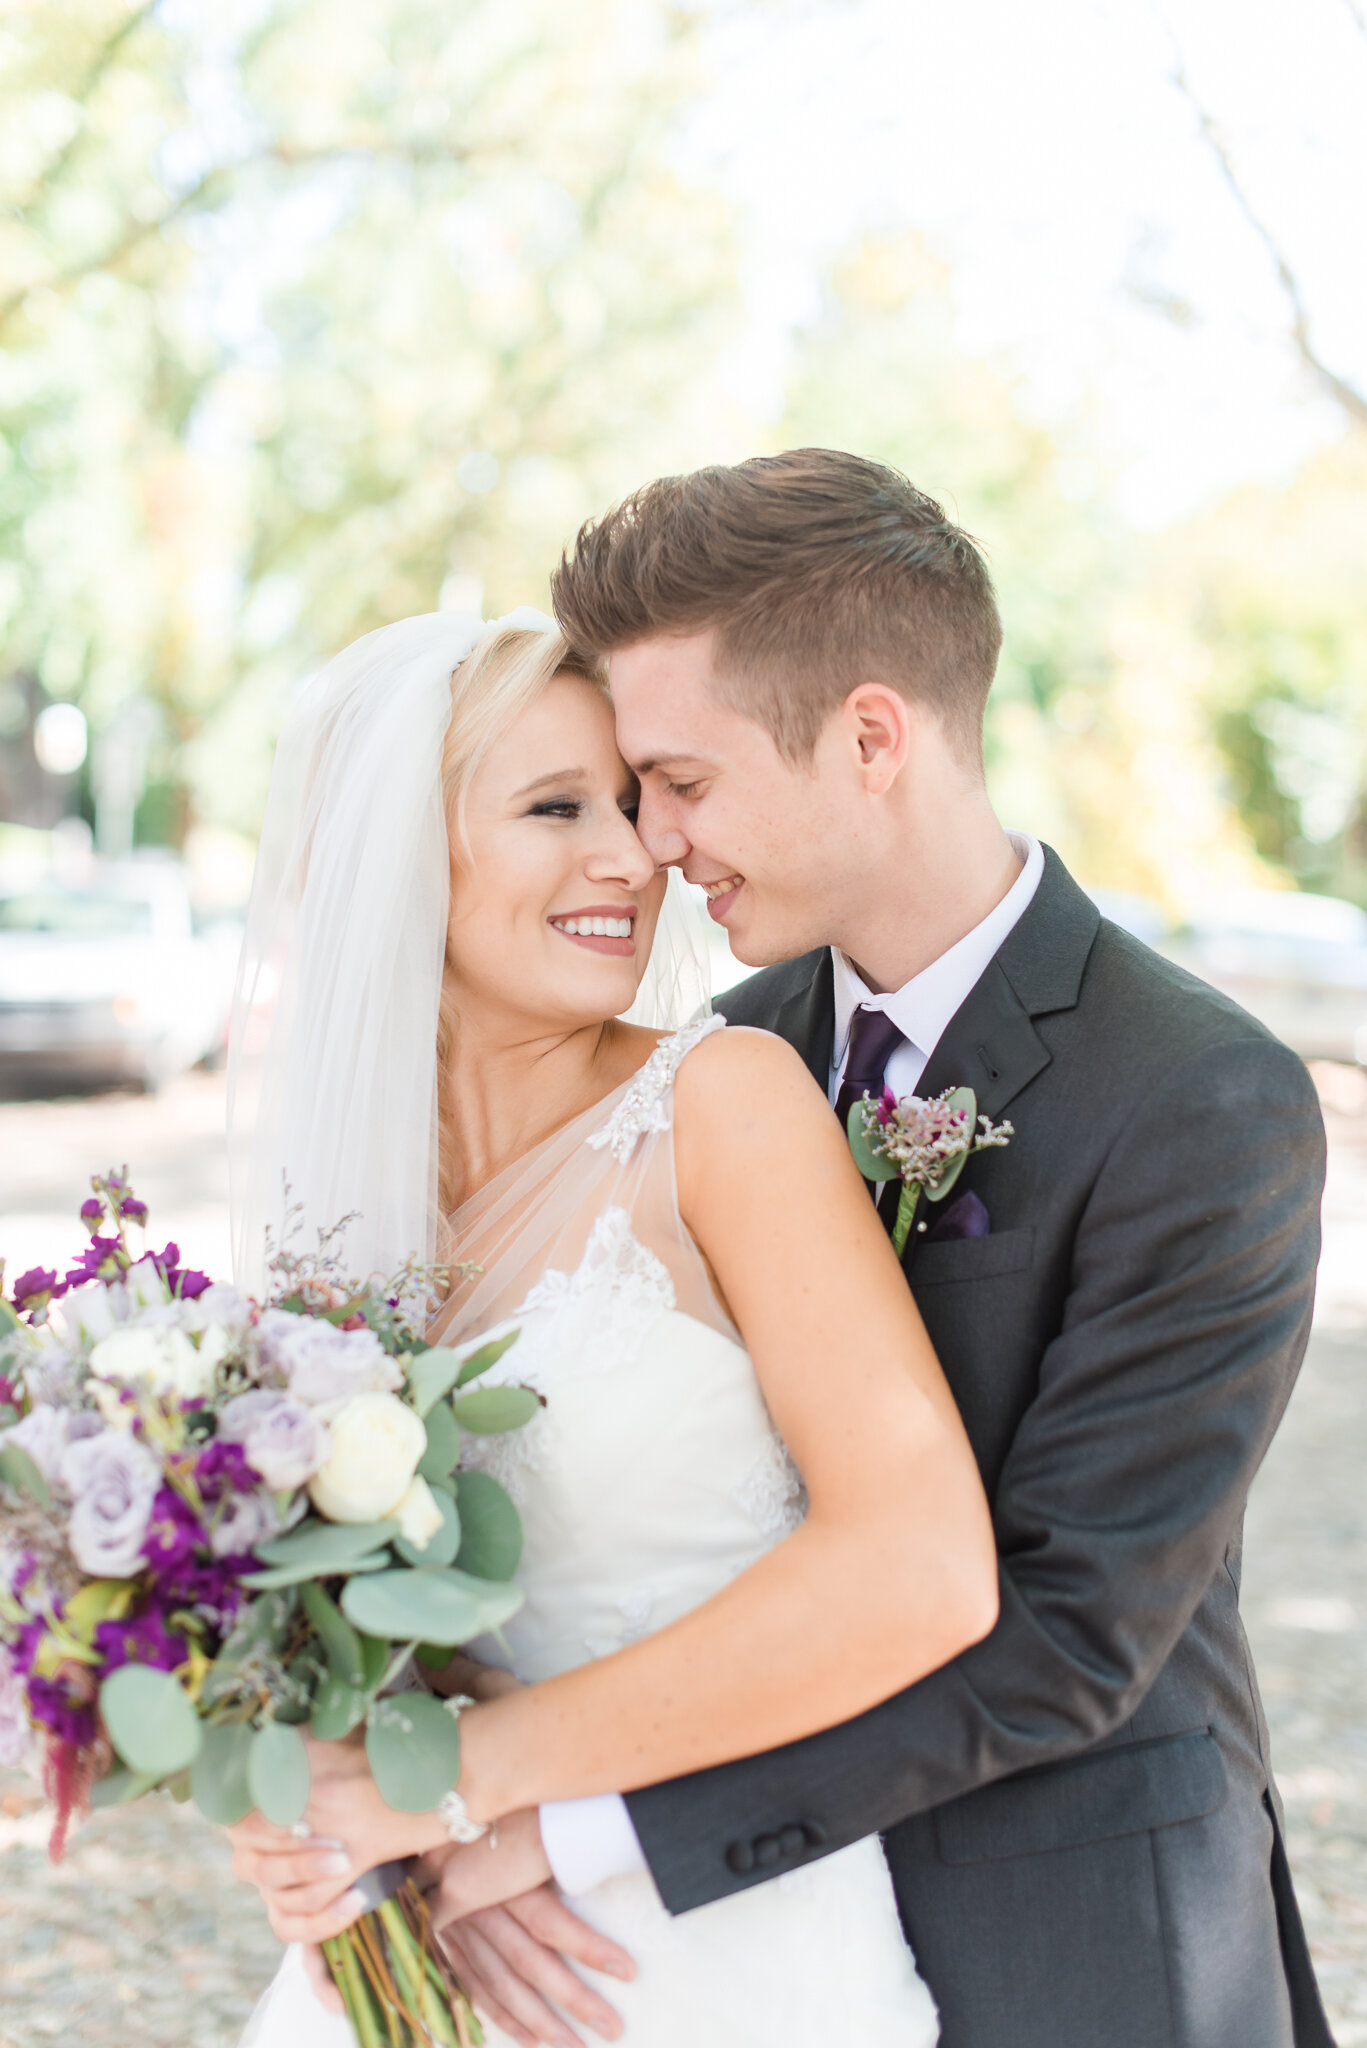 Downtown Indianapolis Wedding at Cyrus Place6947.jpg